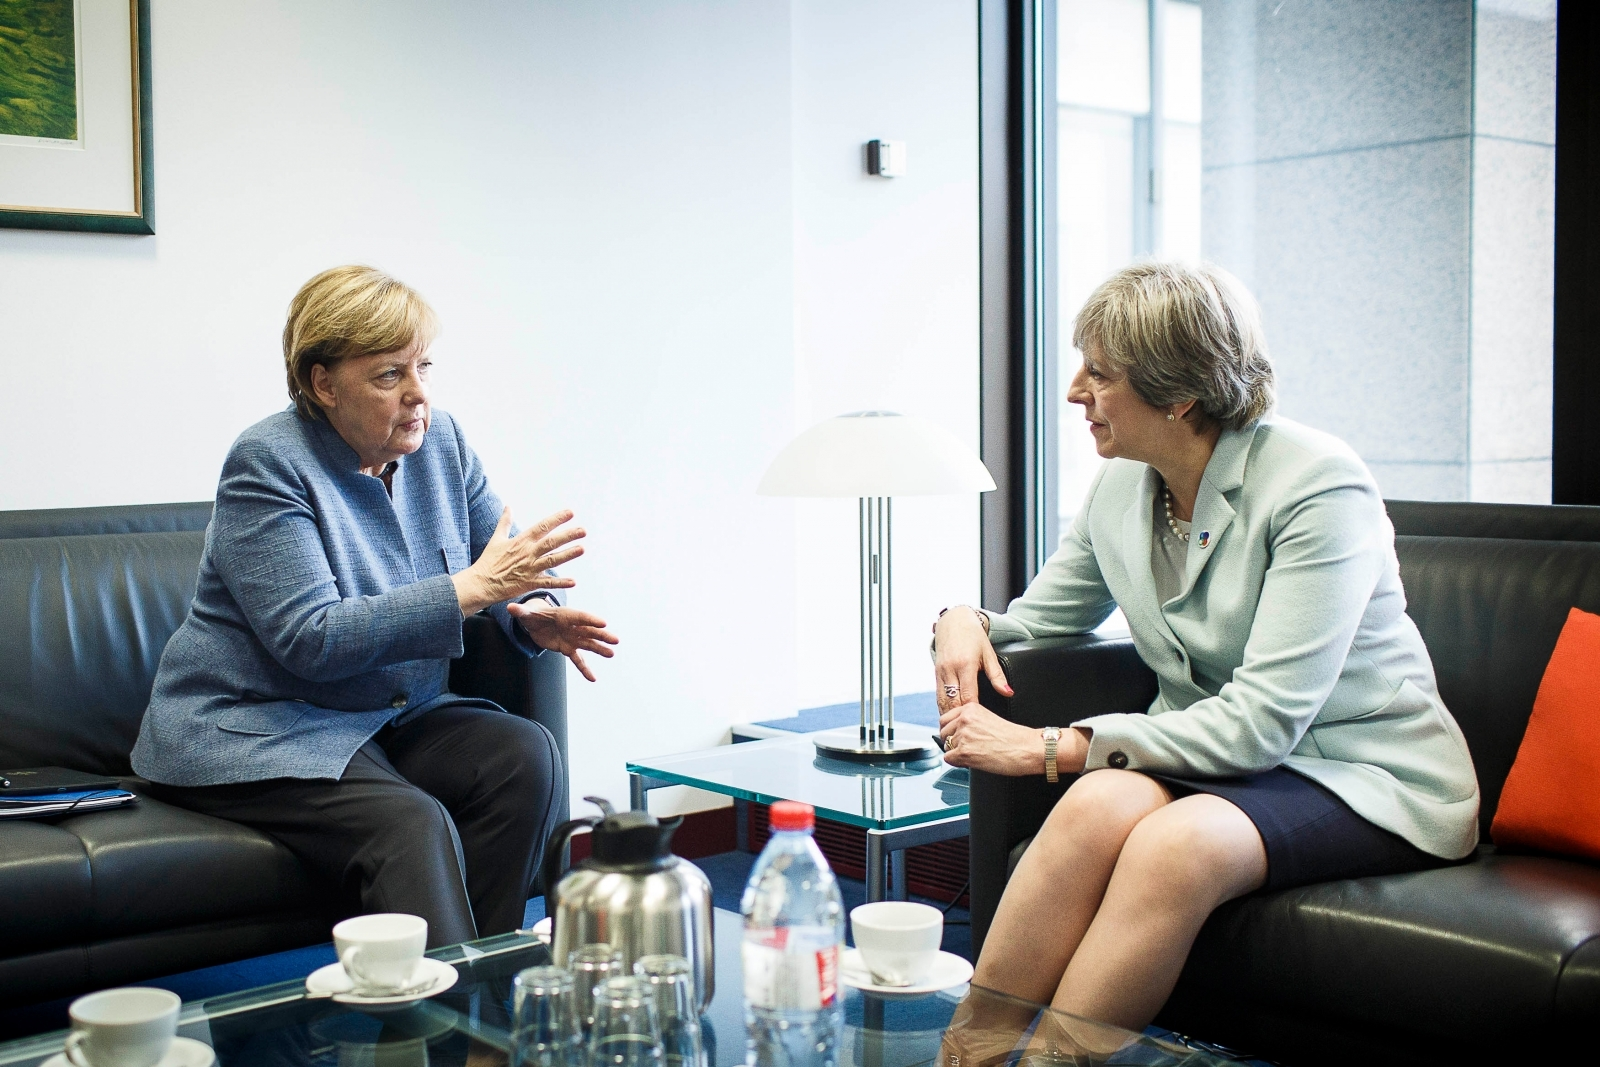 Angela Merkel 'mocked Theresa May's Brexit negotiations'